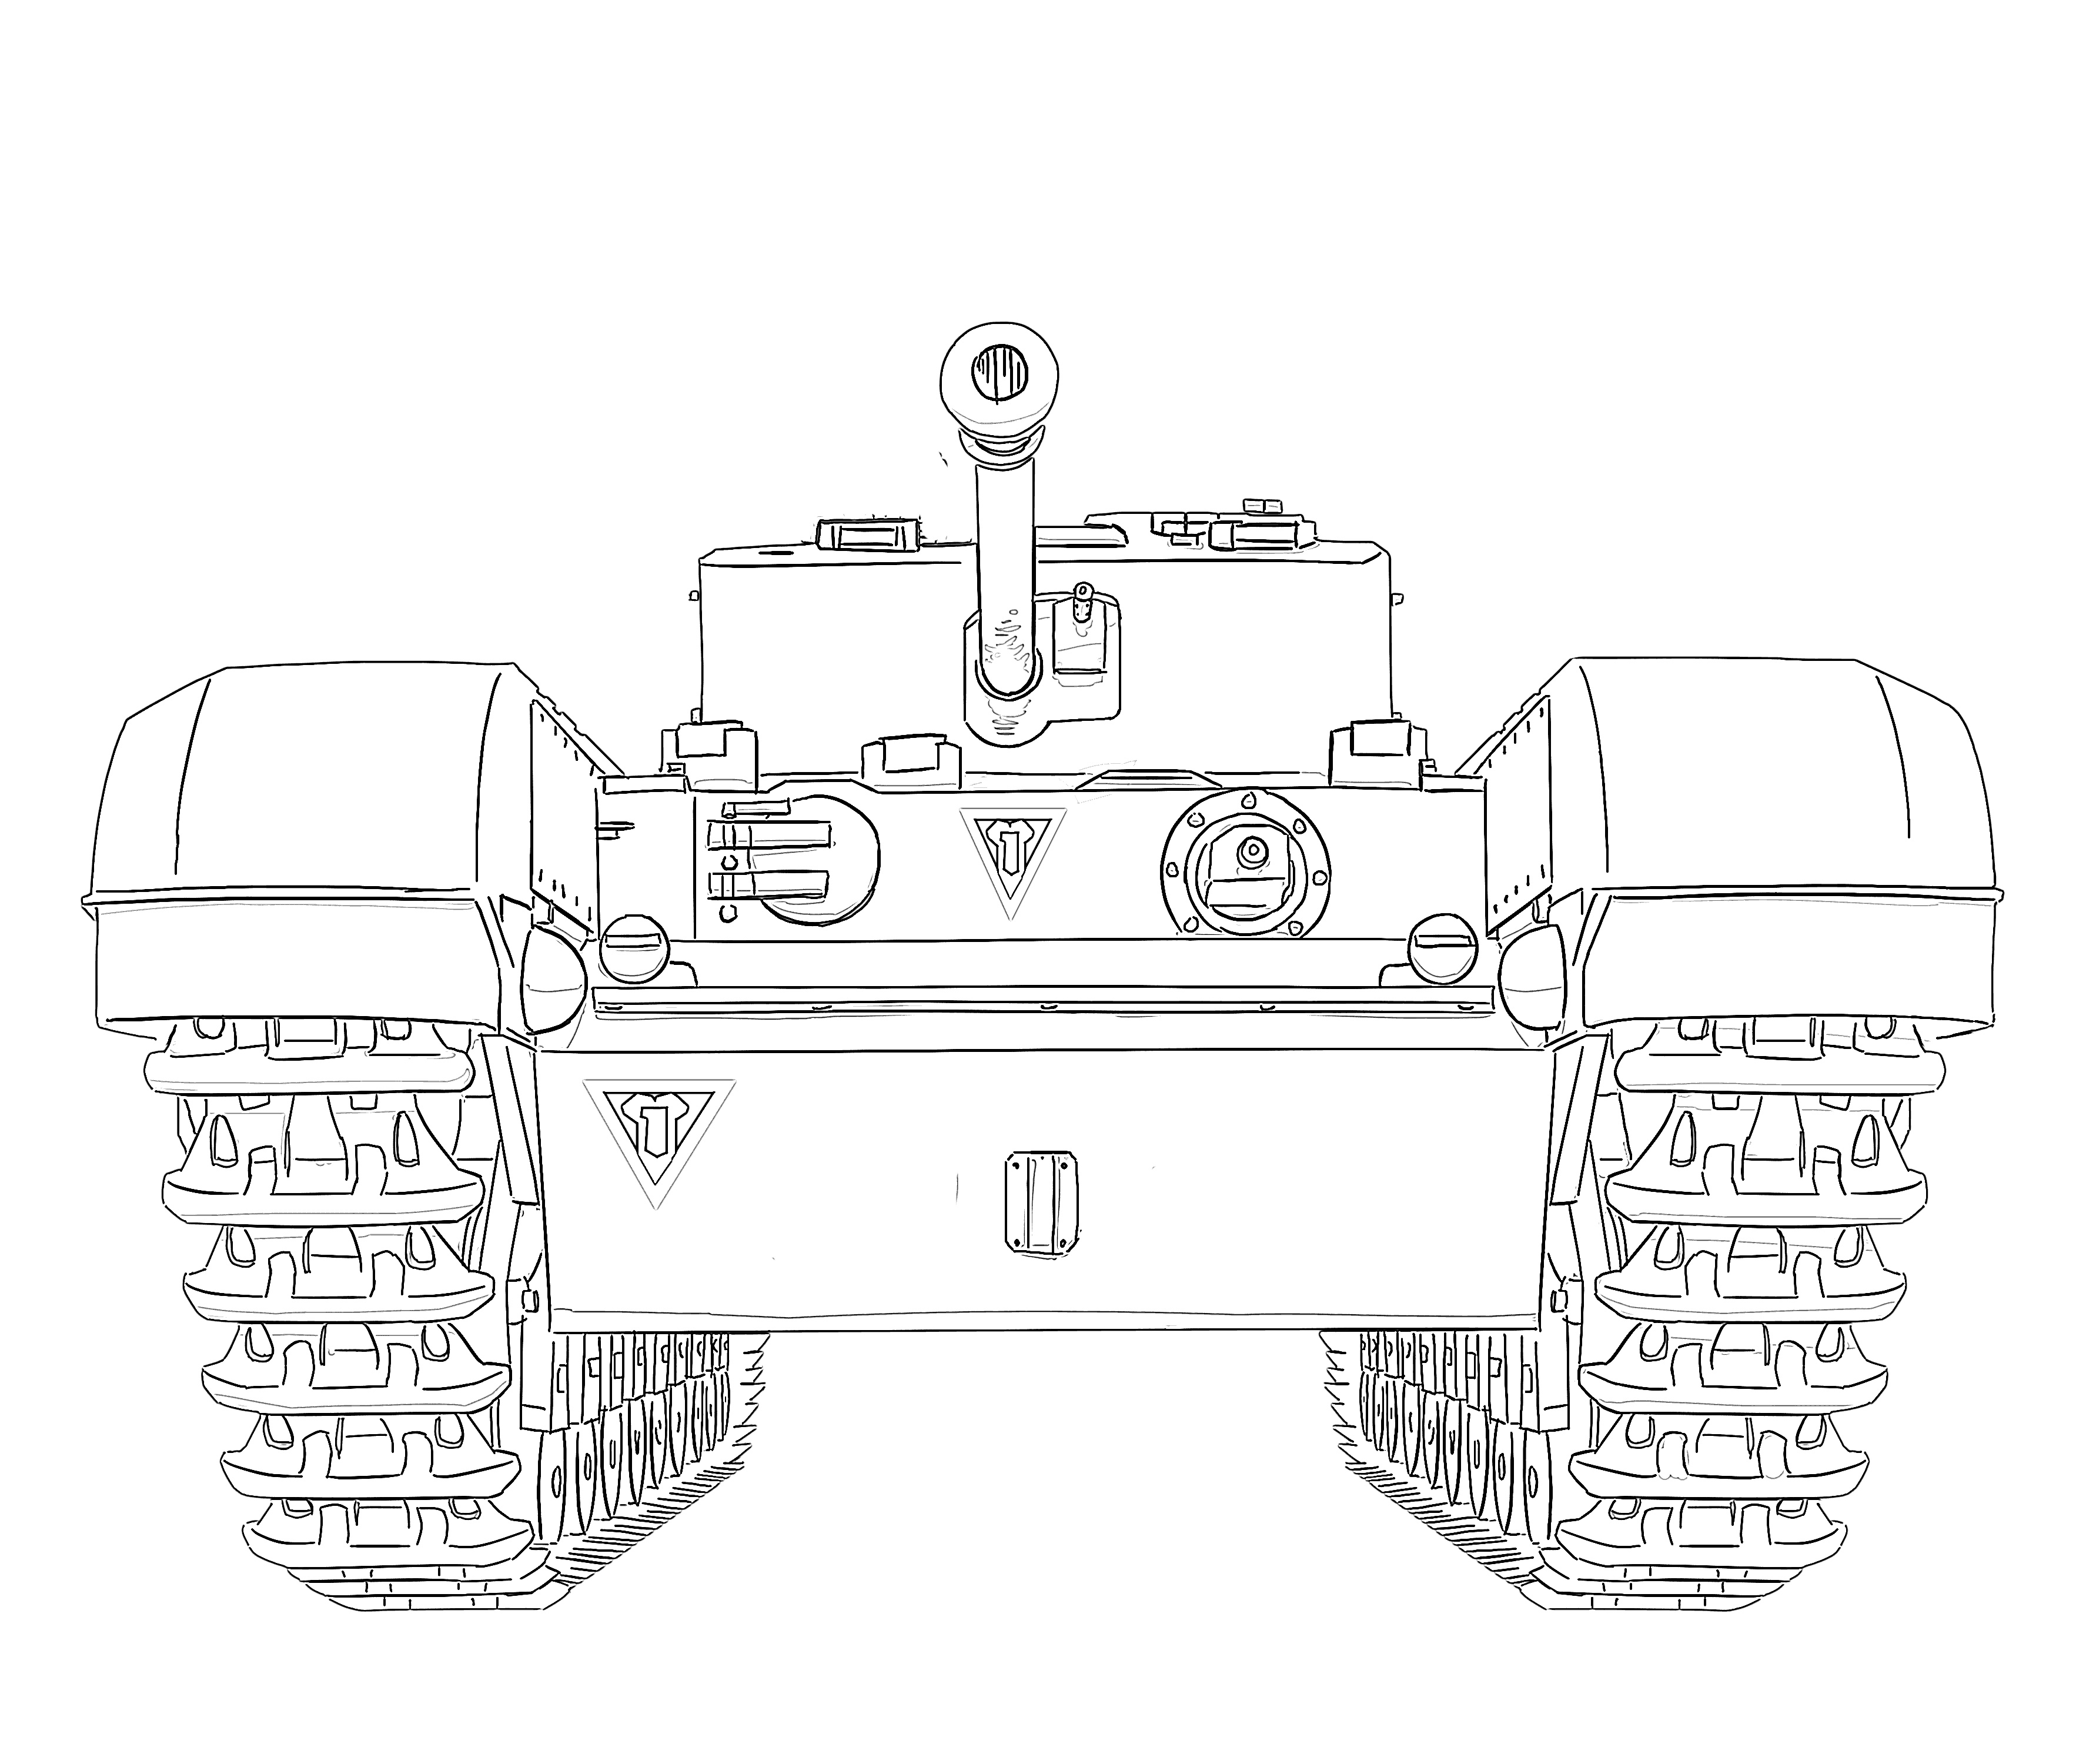 army tank coloring pictures army tanks coloring pages download and print for free pictures army coloring tank 1 1